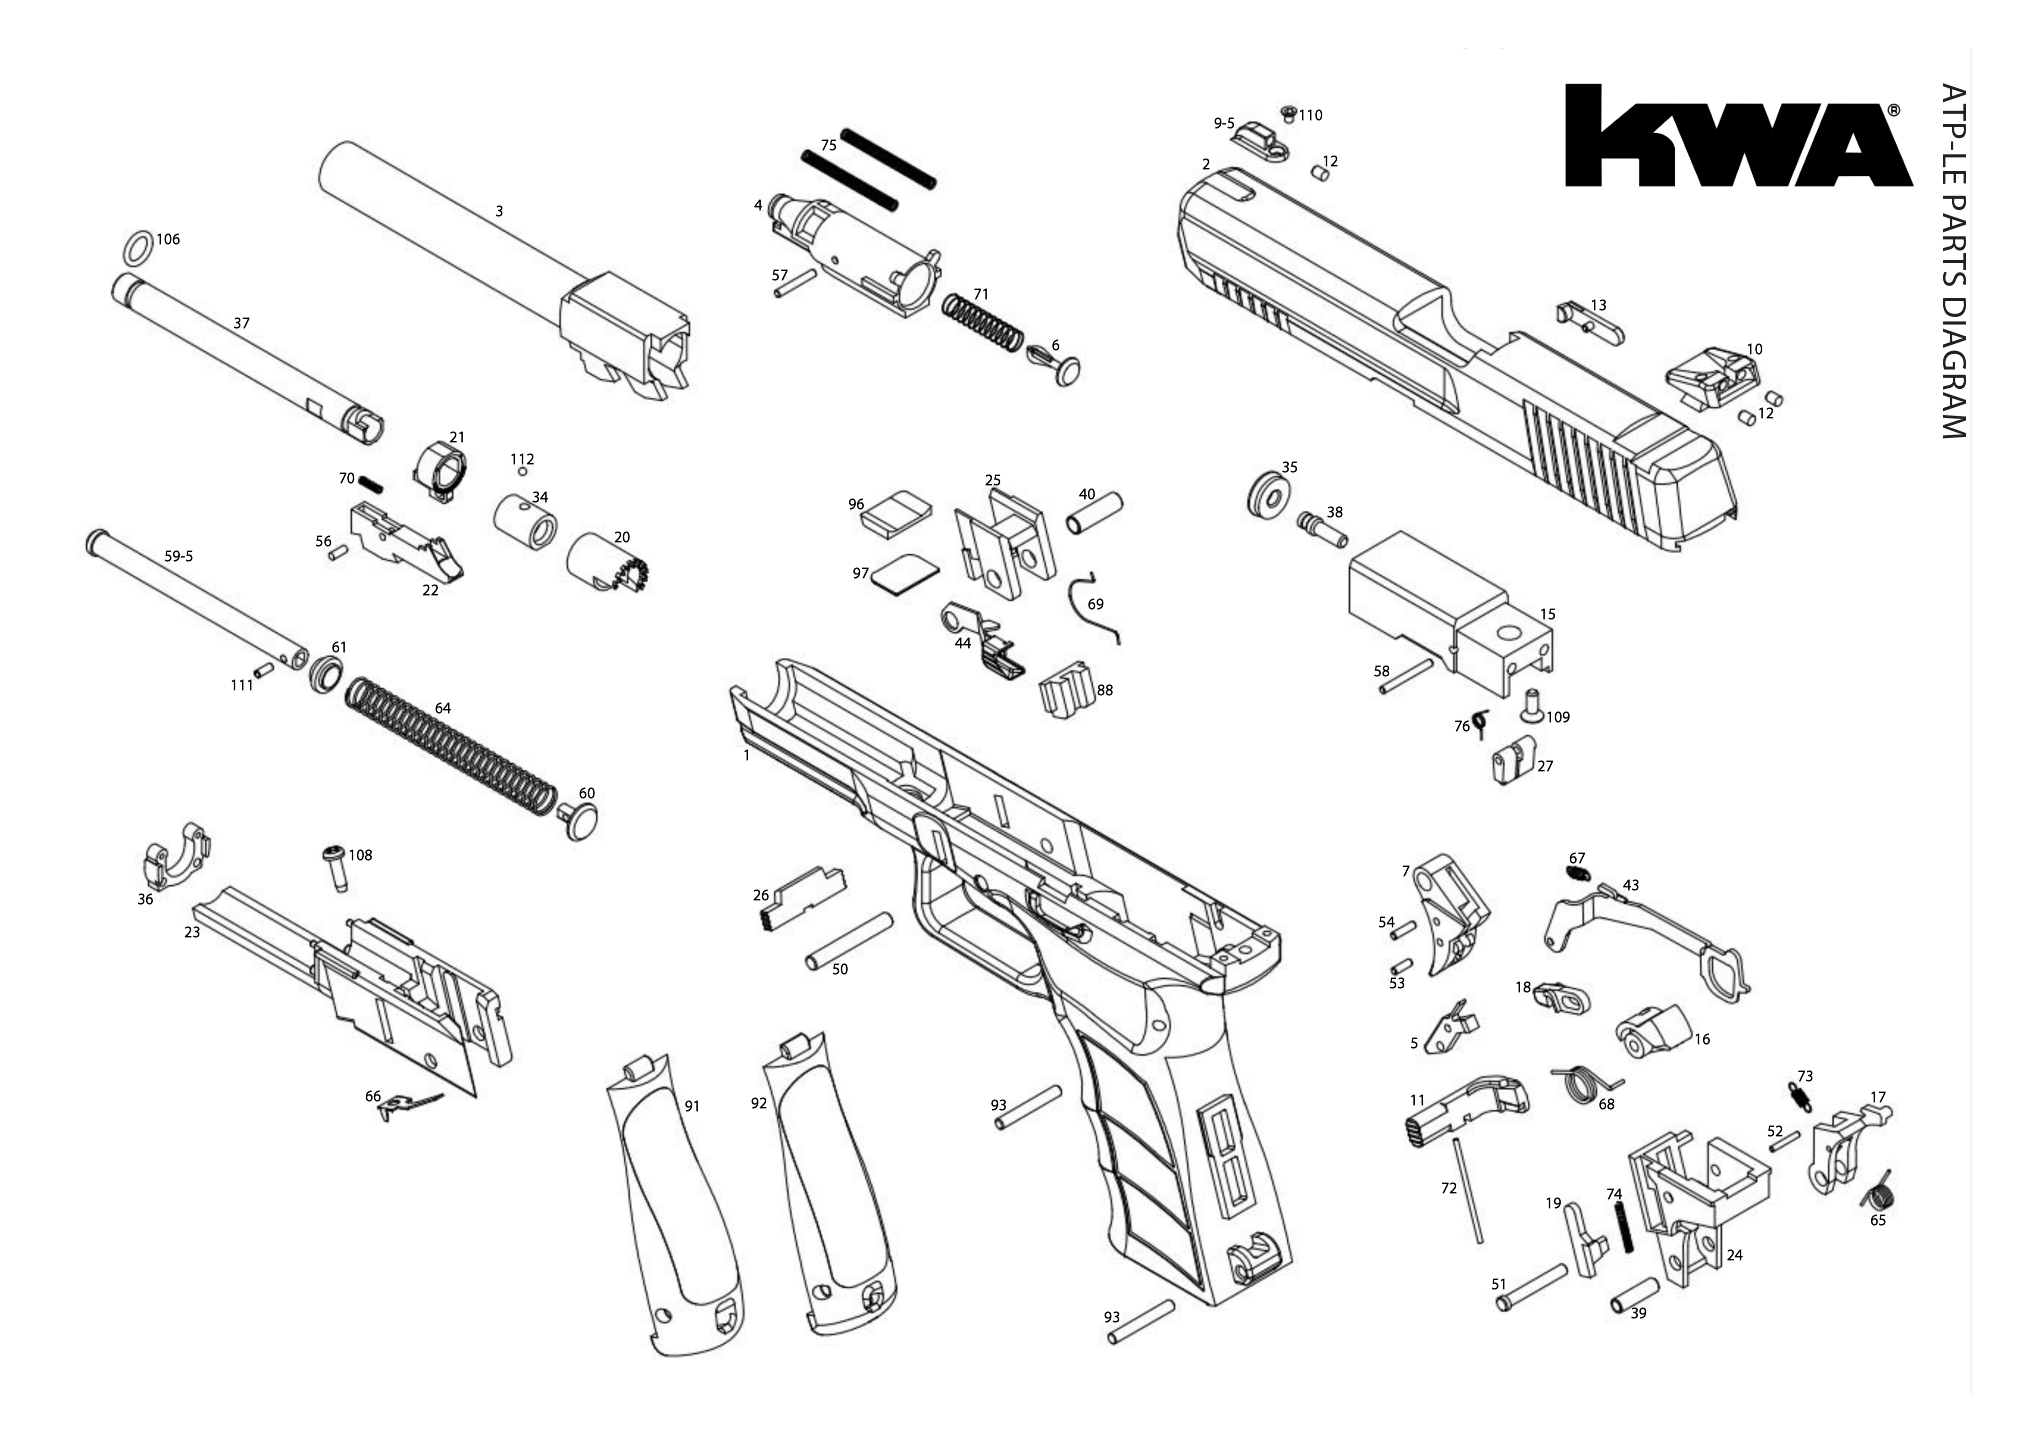 Downloads Kwa Airsoft 22 Rifle Parts Diagram Engine Car And Component Gbb Pistols